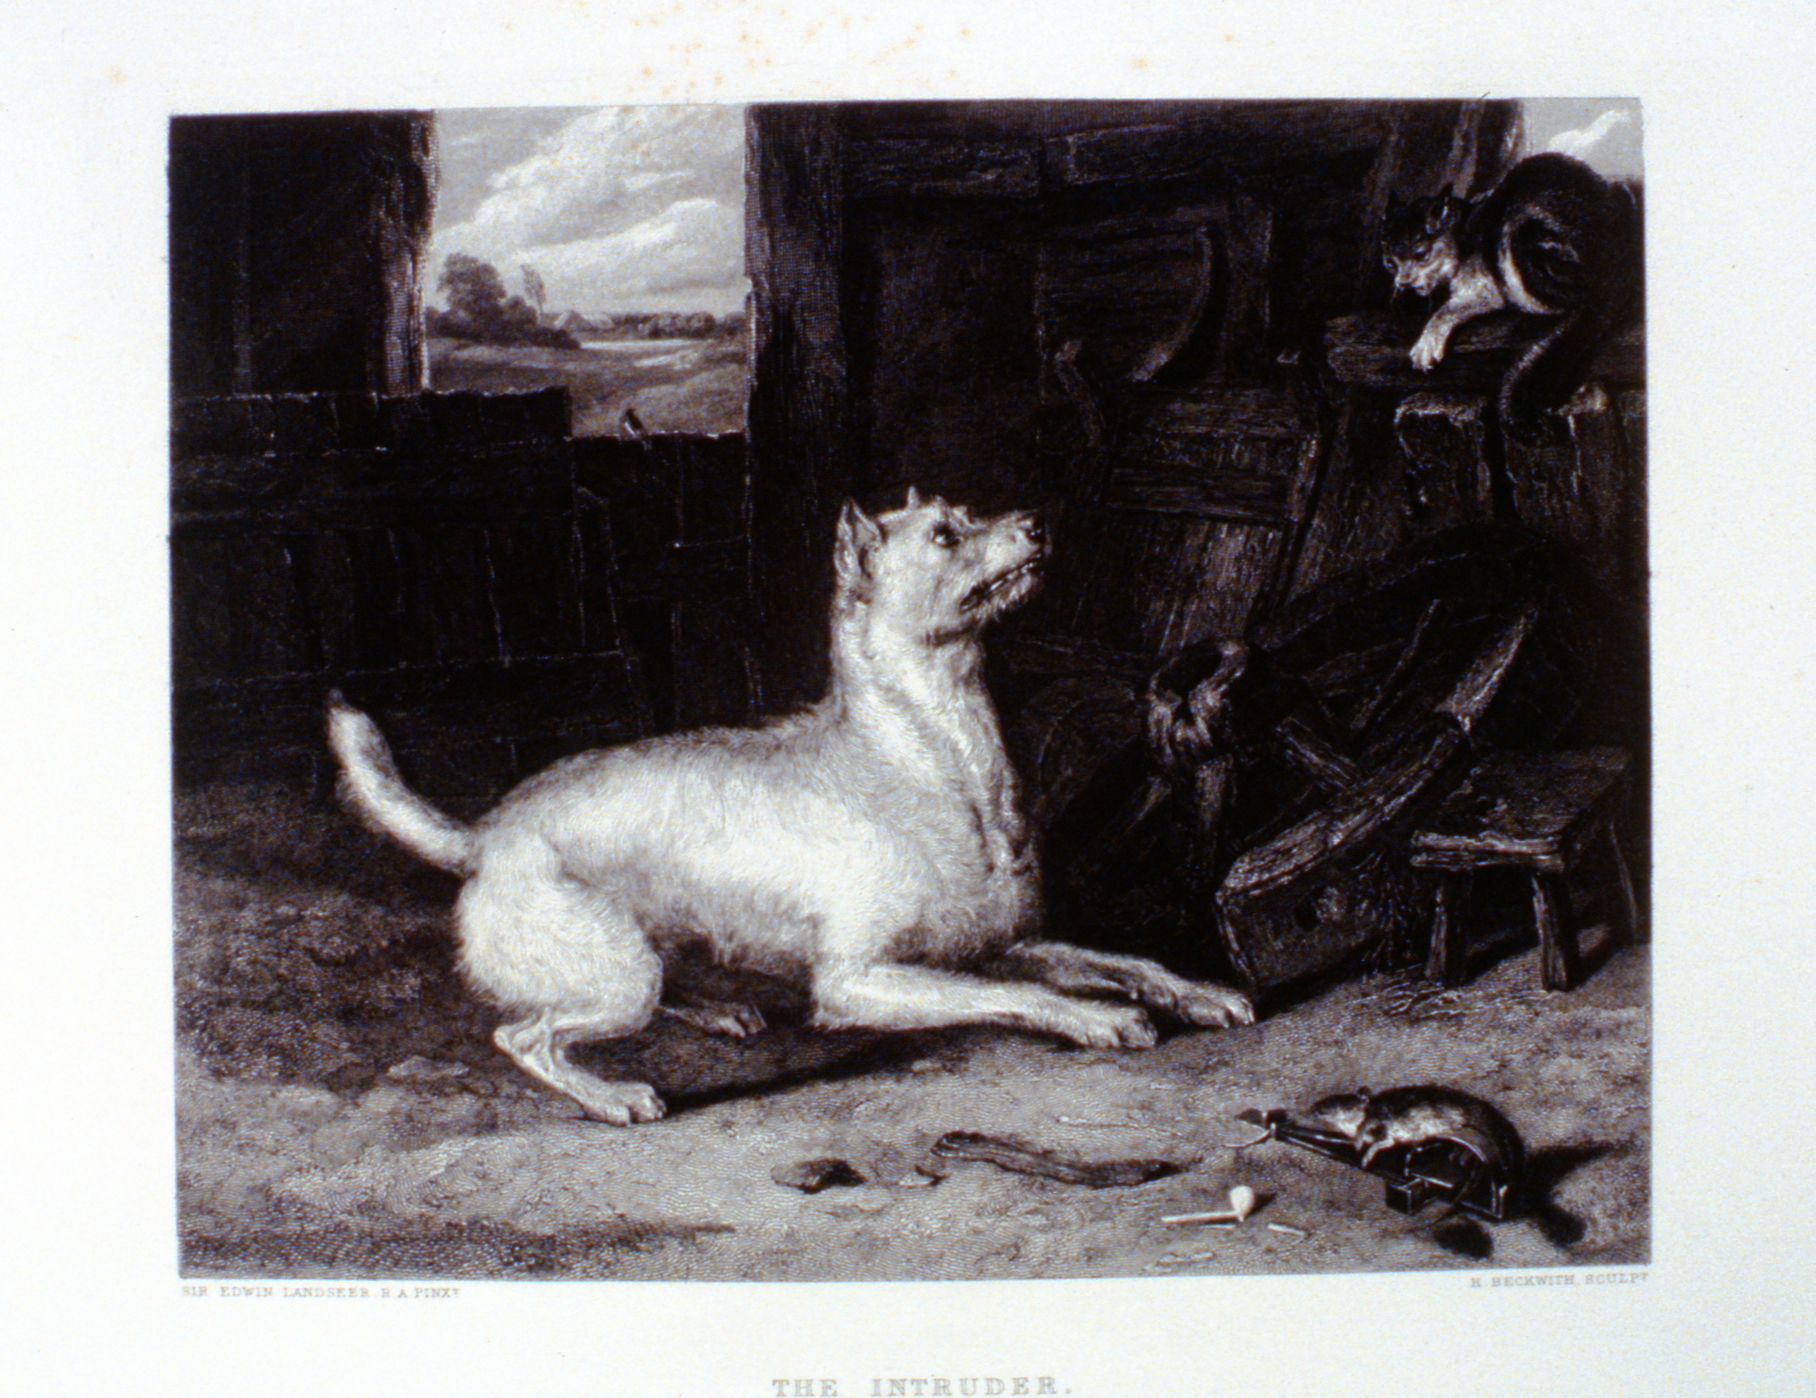 The Intruder , c. late 19th Century, H. Beckwith, steel engraving, 17.8 cm x 22.5 cm, 1996.08.38, gift of Yvonne Adams